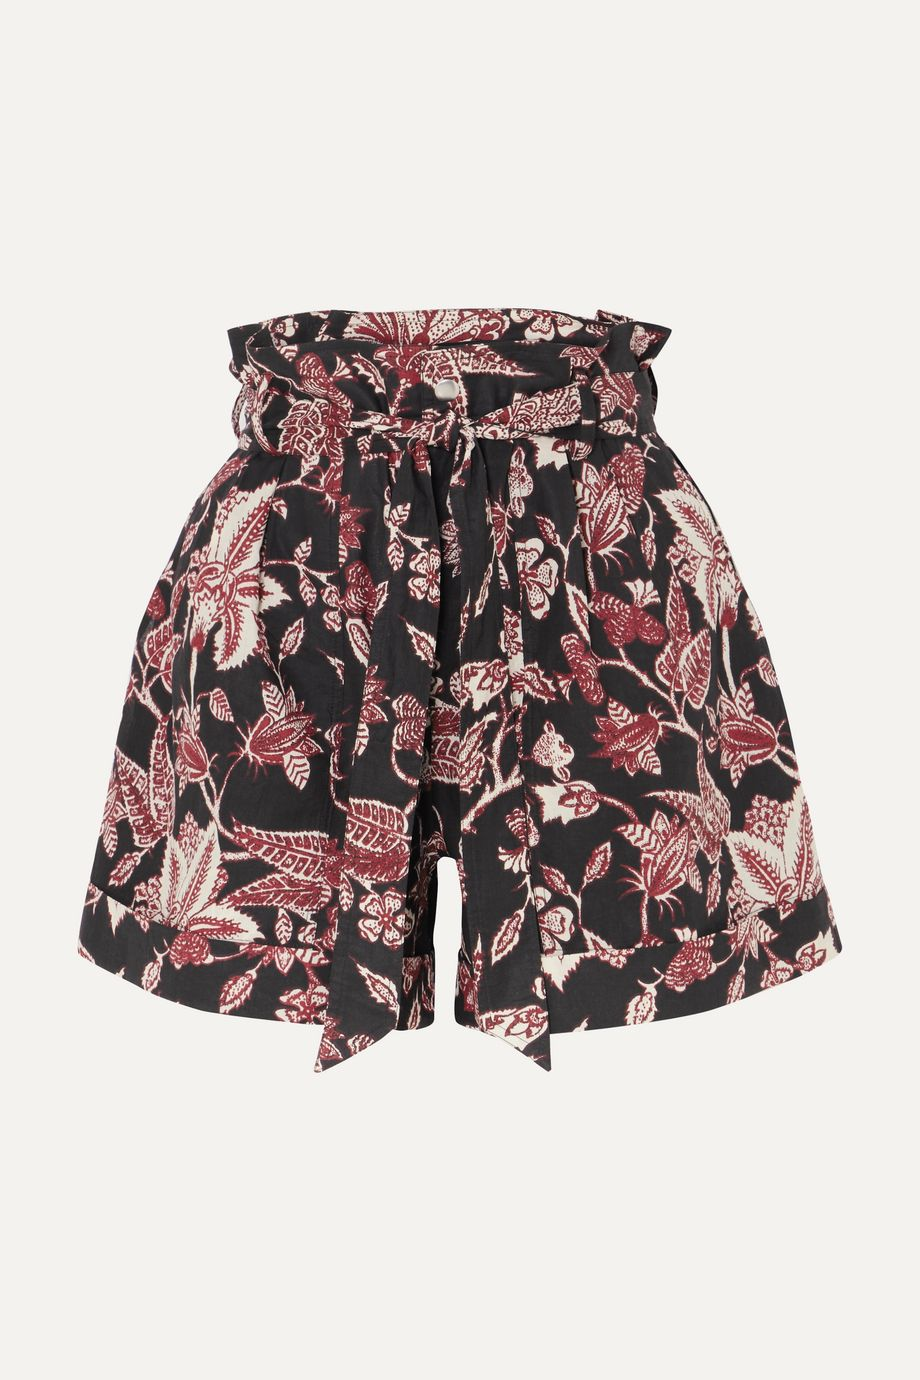 Isabel Marant Lweni floral-print cotton shorts